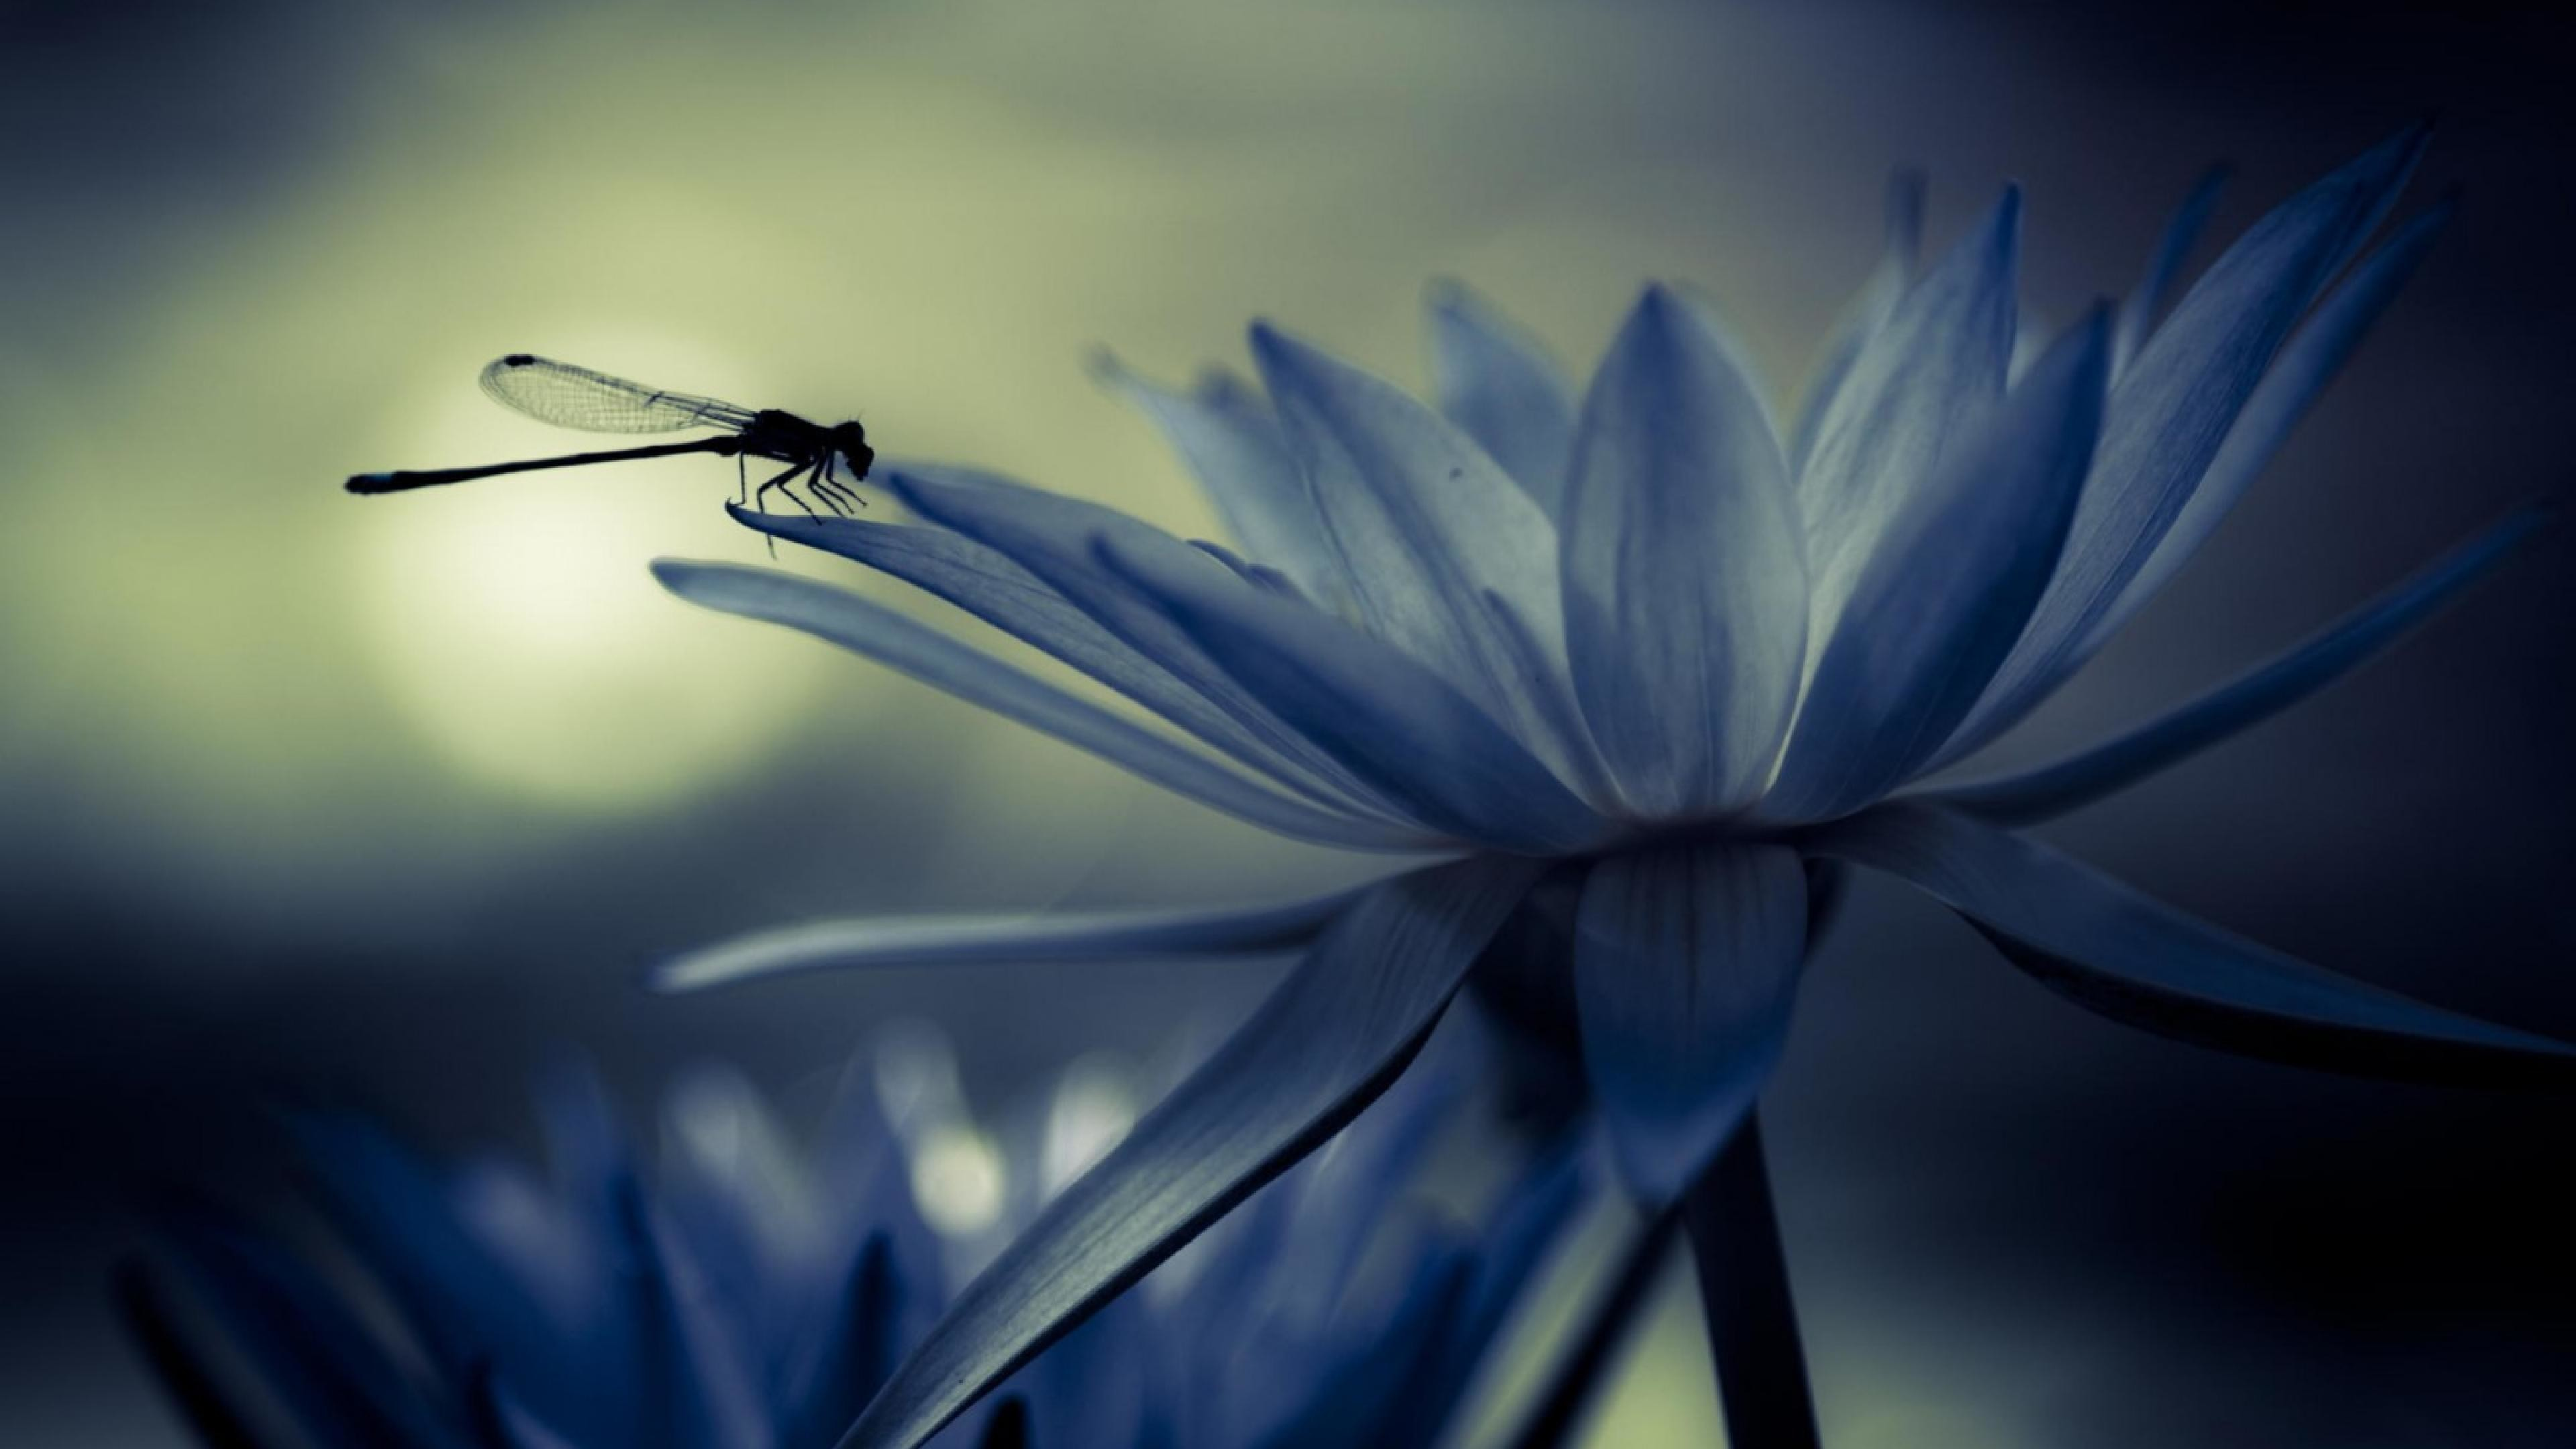 Res: 3840x2160, Water lily dragonfly insect  wallpaper.